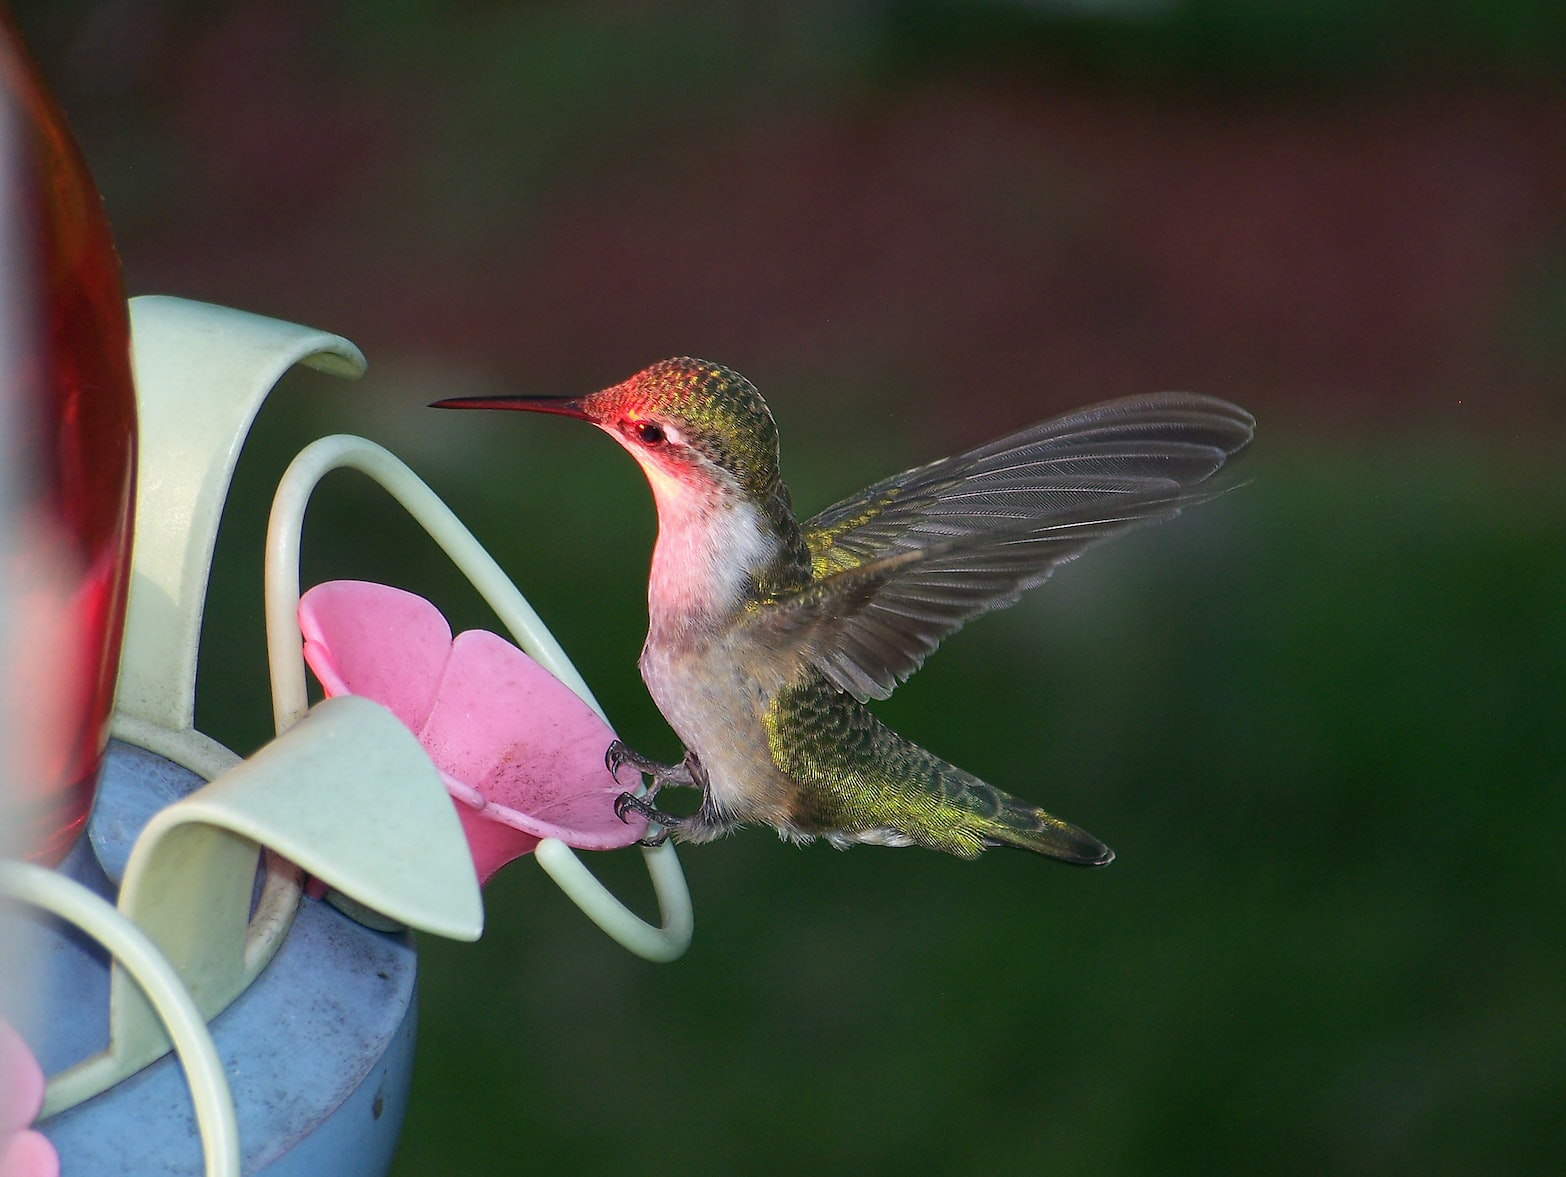 hummingbird on the flower like vase